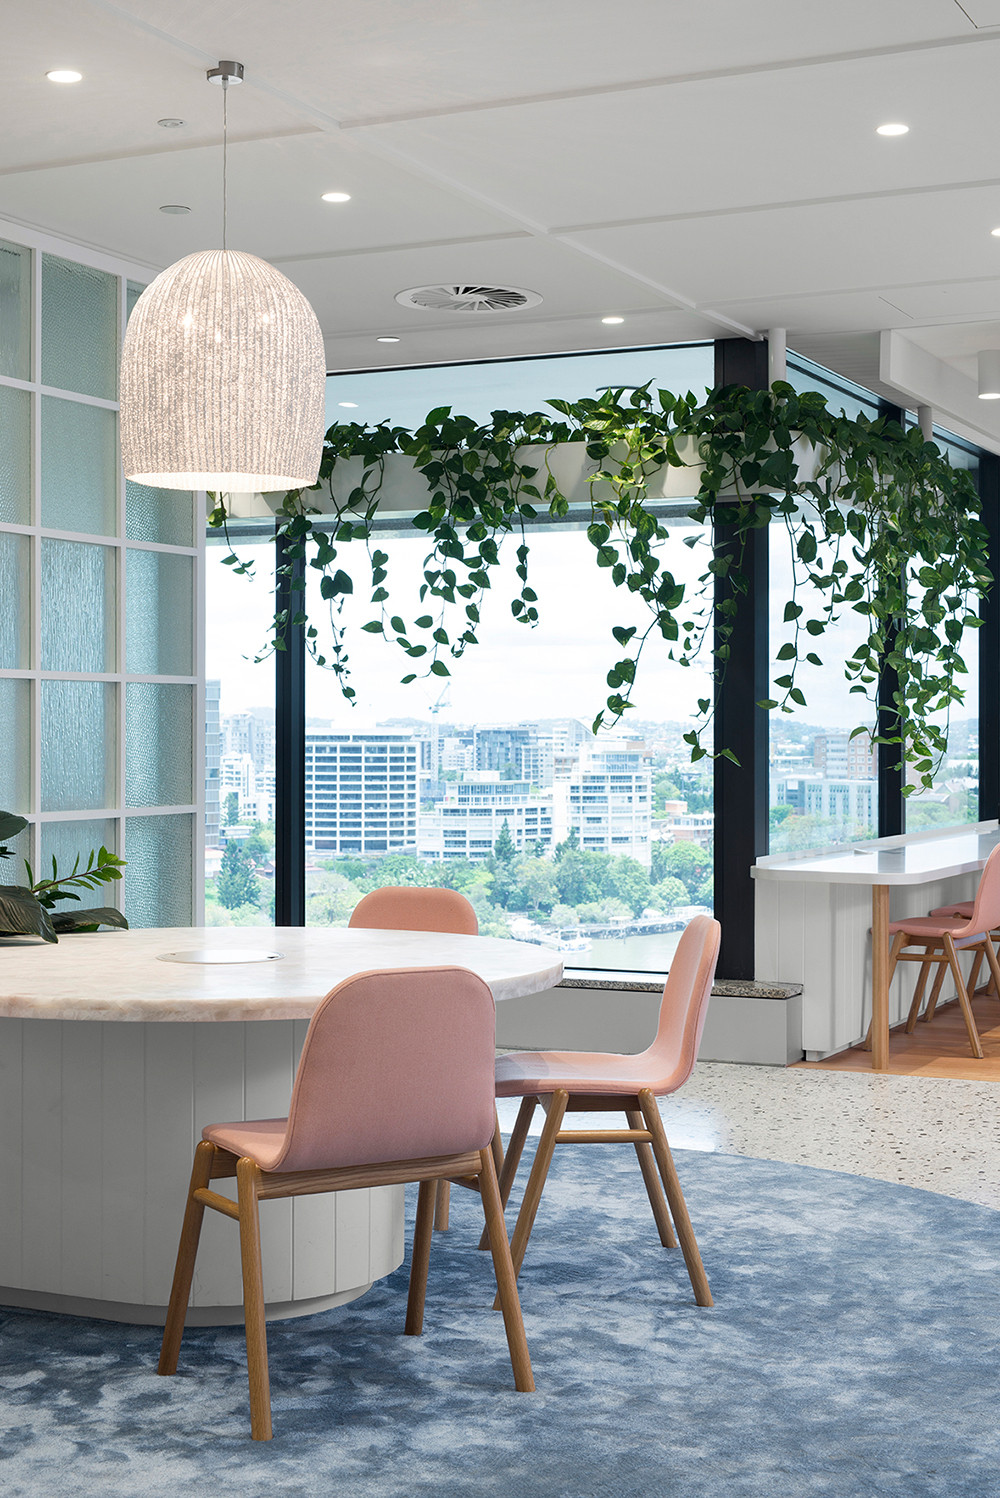 Mirvac Hq Brisbane By Peddle Potter Workplace Design